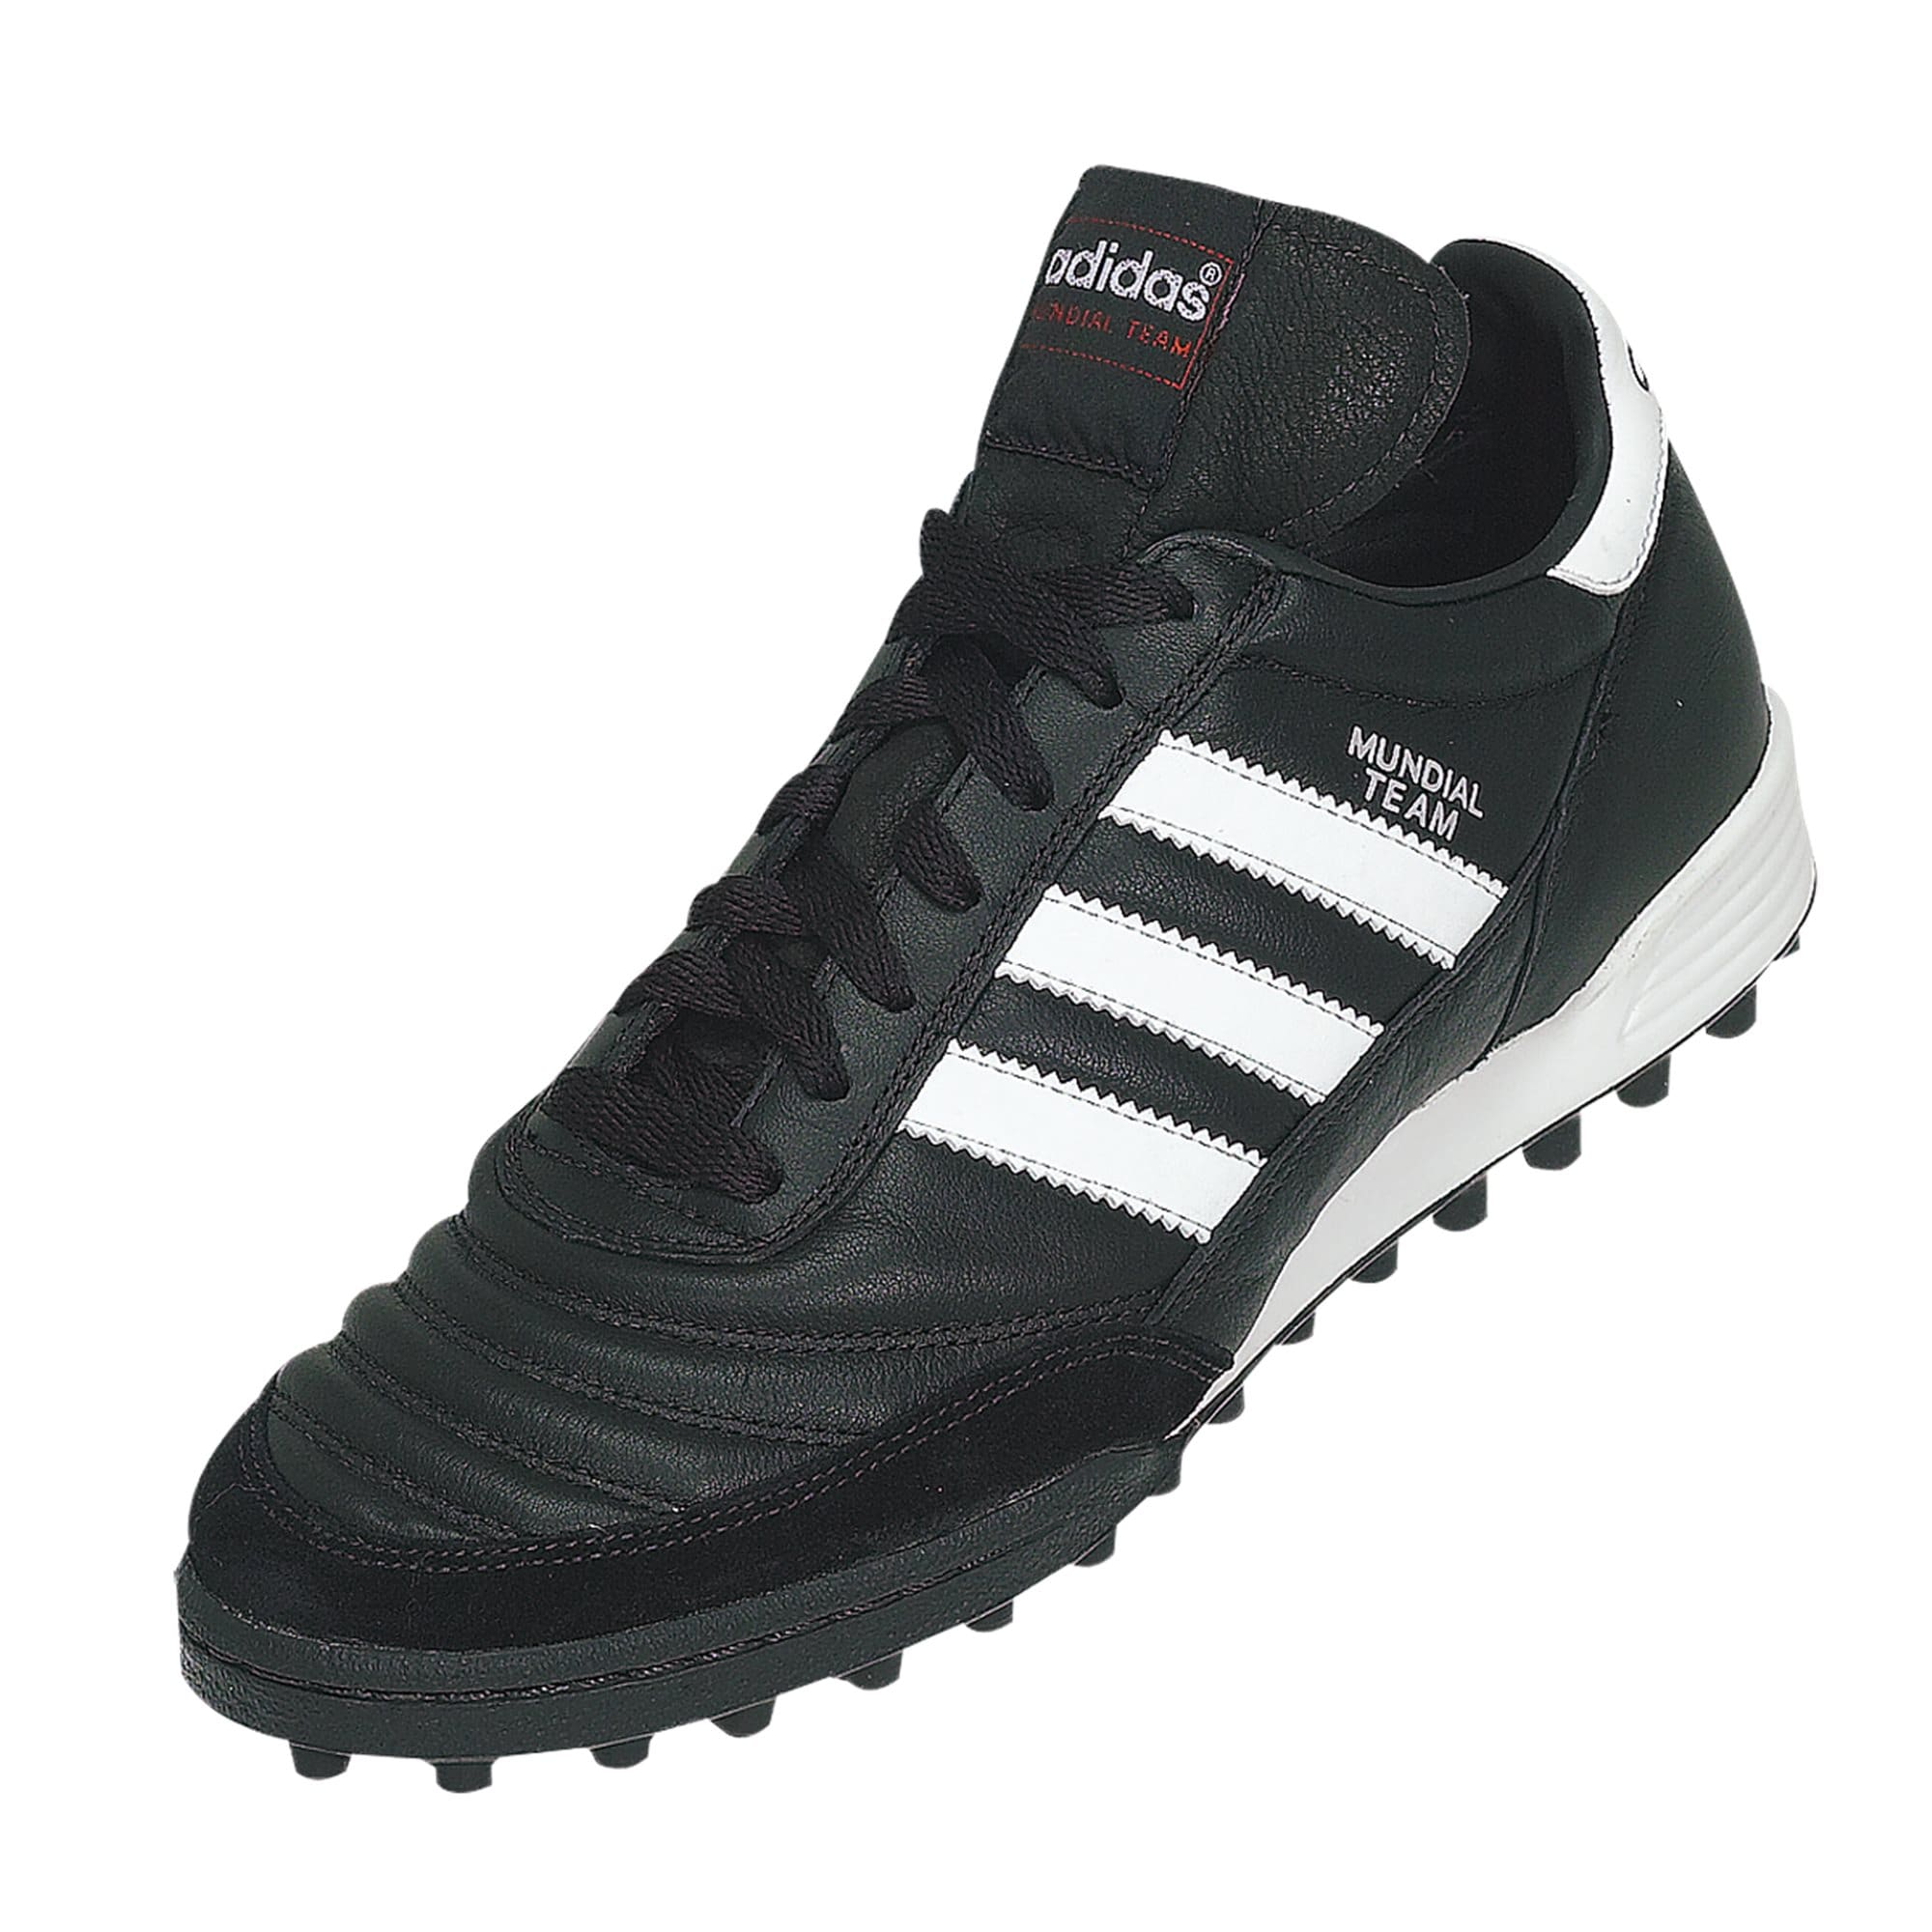 adidas Mundial Team Artificial Turf Shoe - Black/White